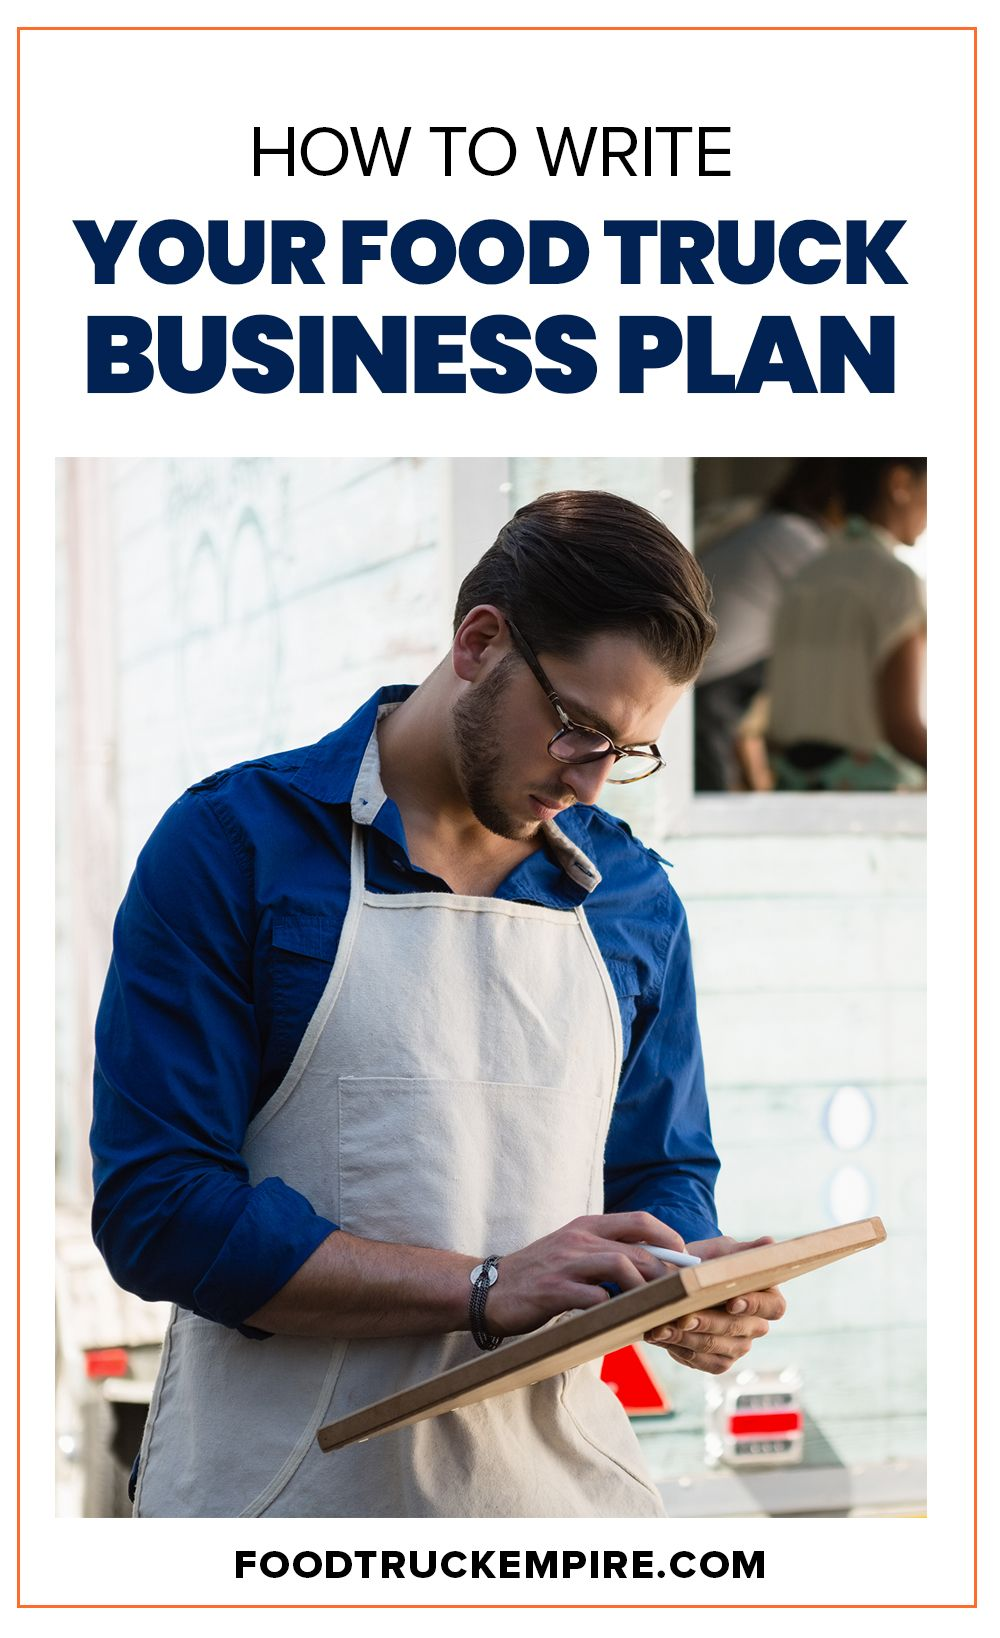 How to Write a Food Truck Business Plan Download